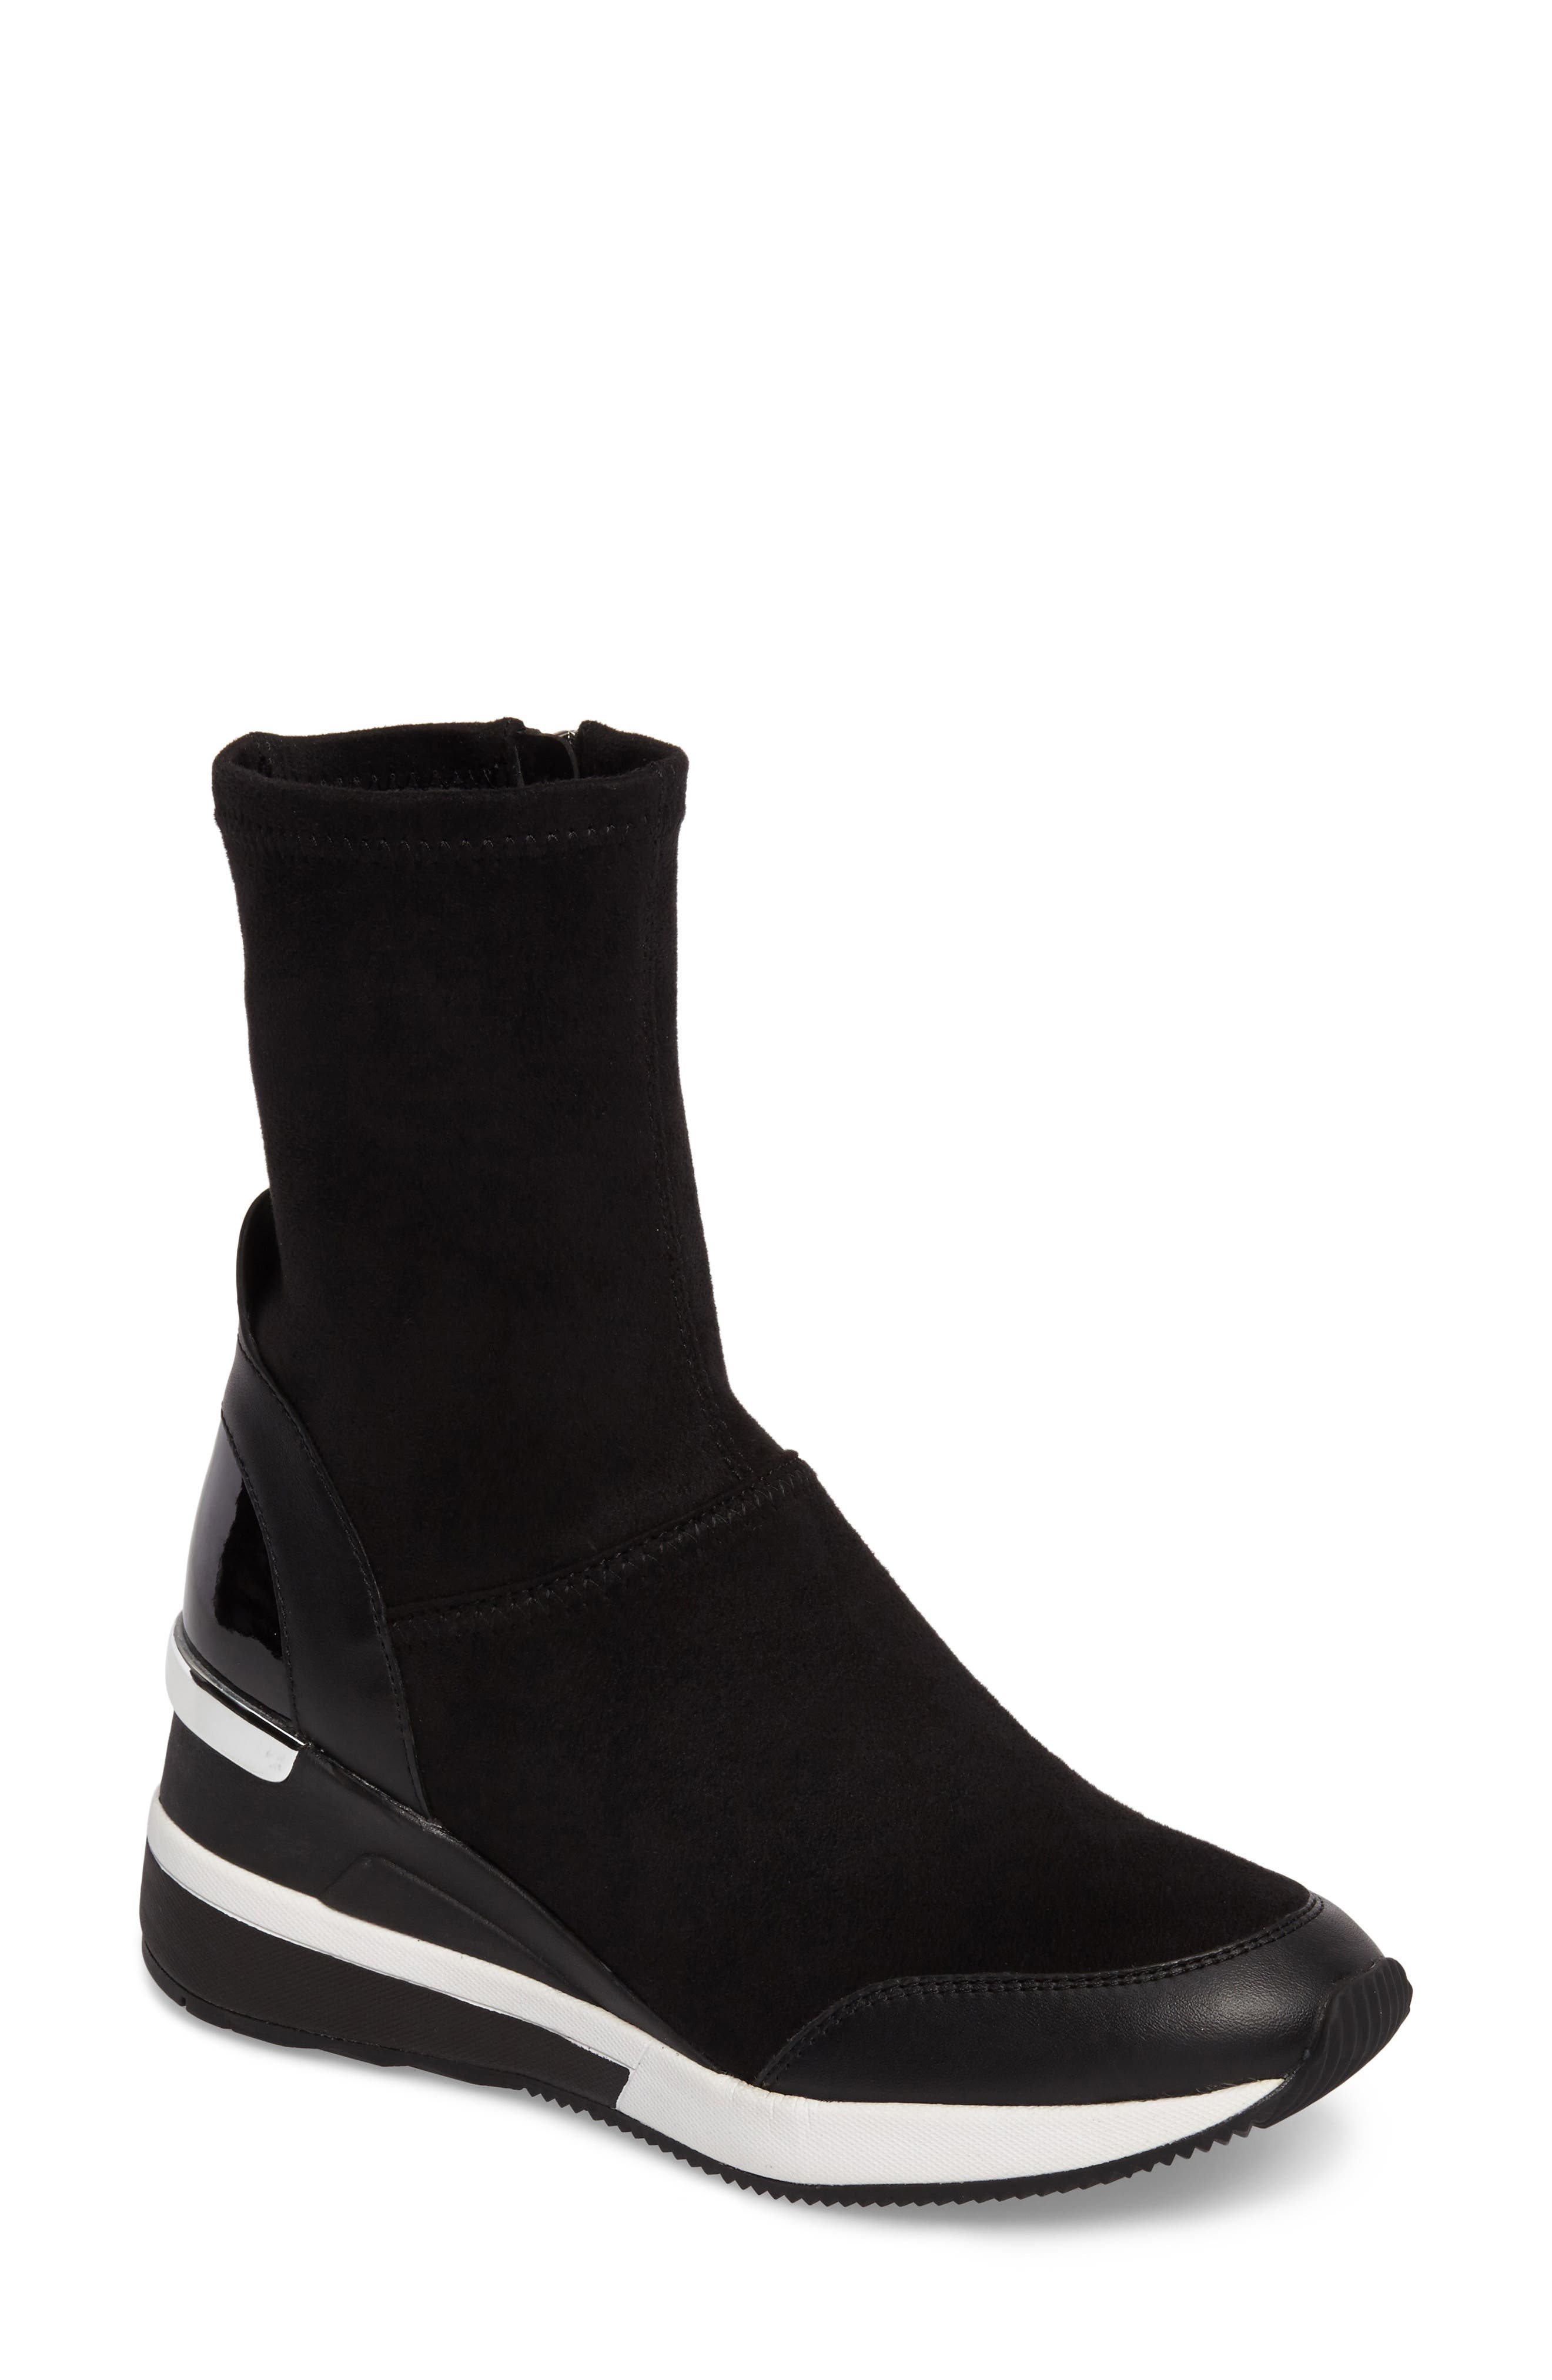 'Ace' Wedge Sneaker Bootie,                             Main thumbnail 1, color,                             BLACK SUEDE